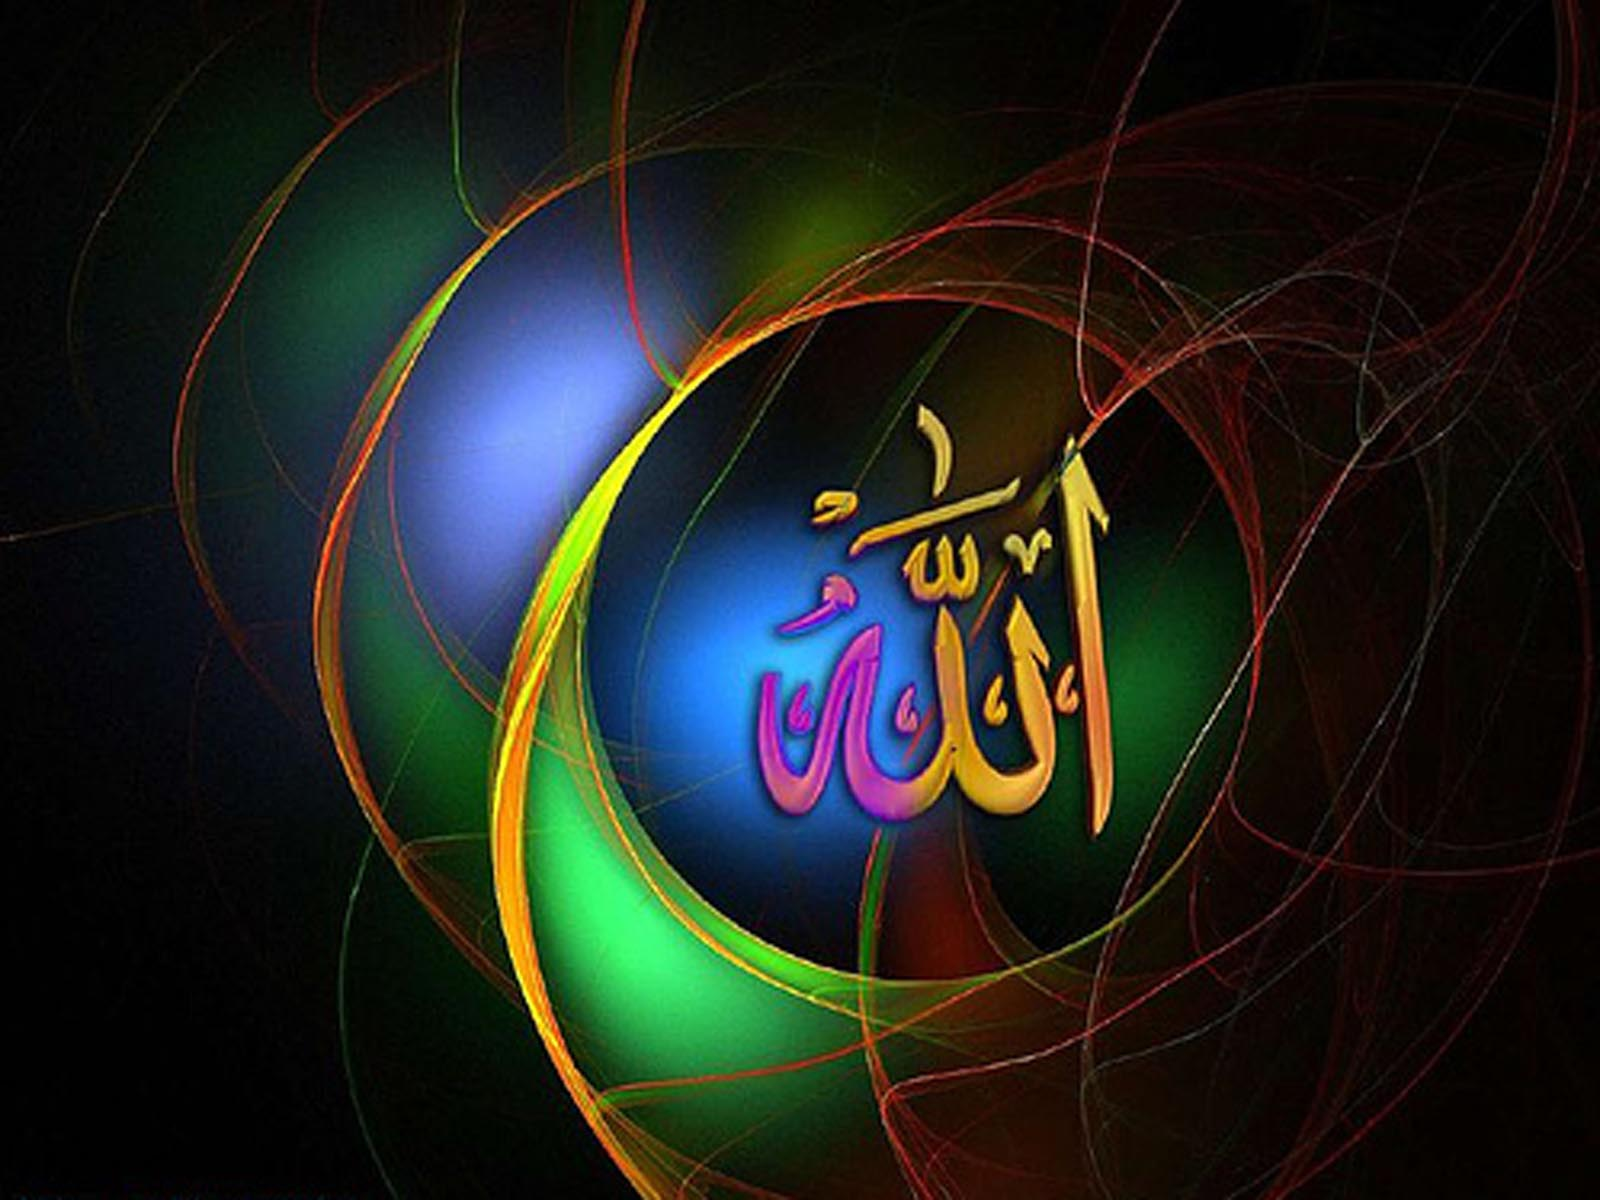 islamic wallpapers: ALLAHalll name wallpapers